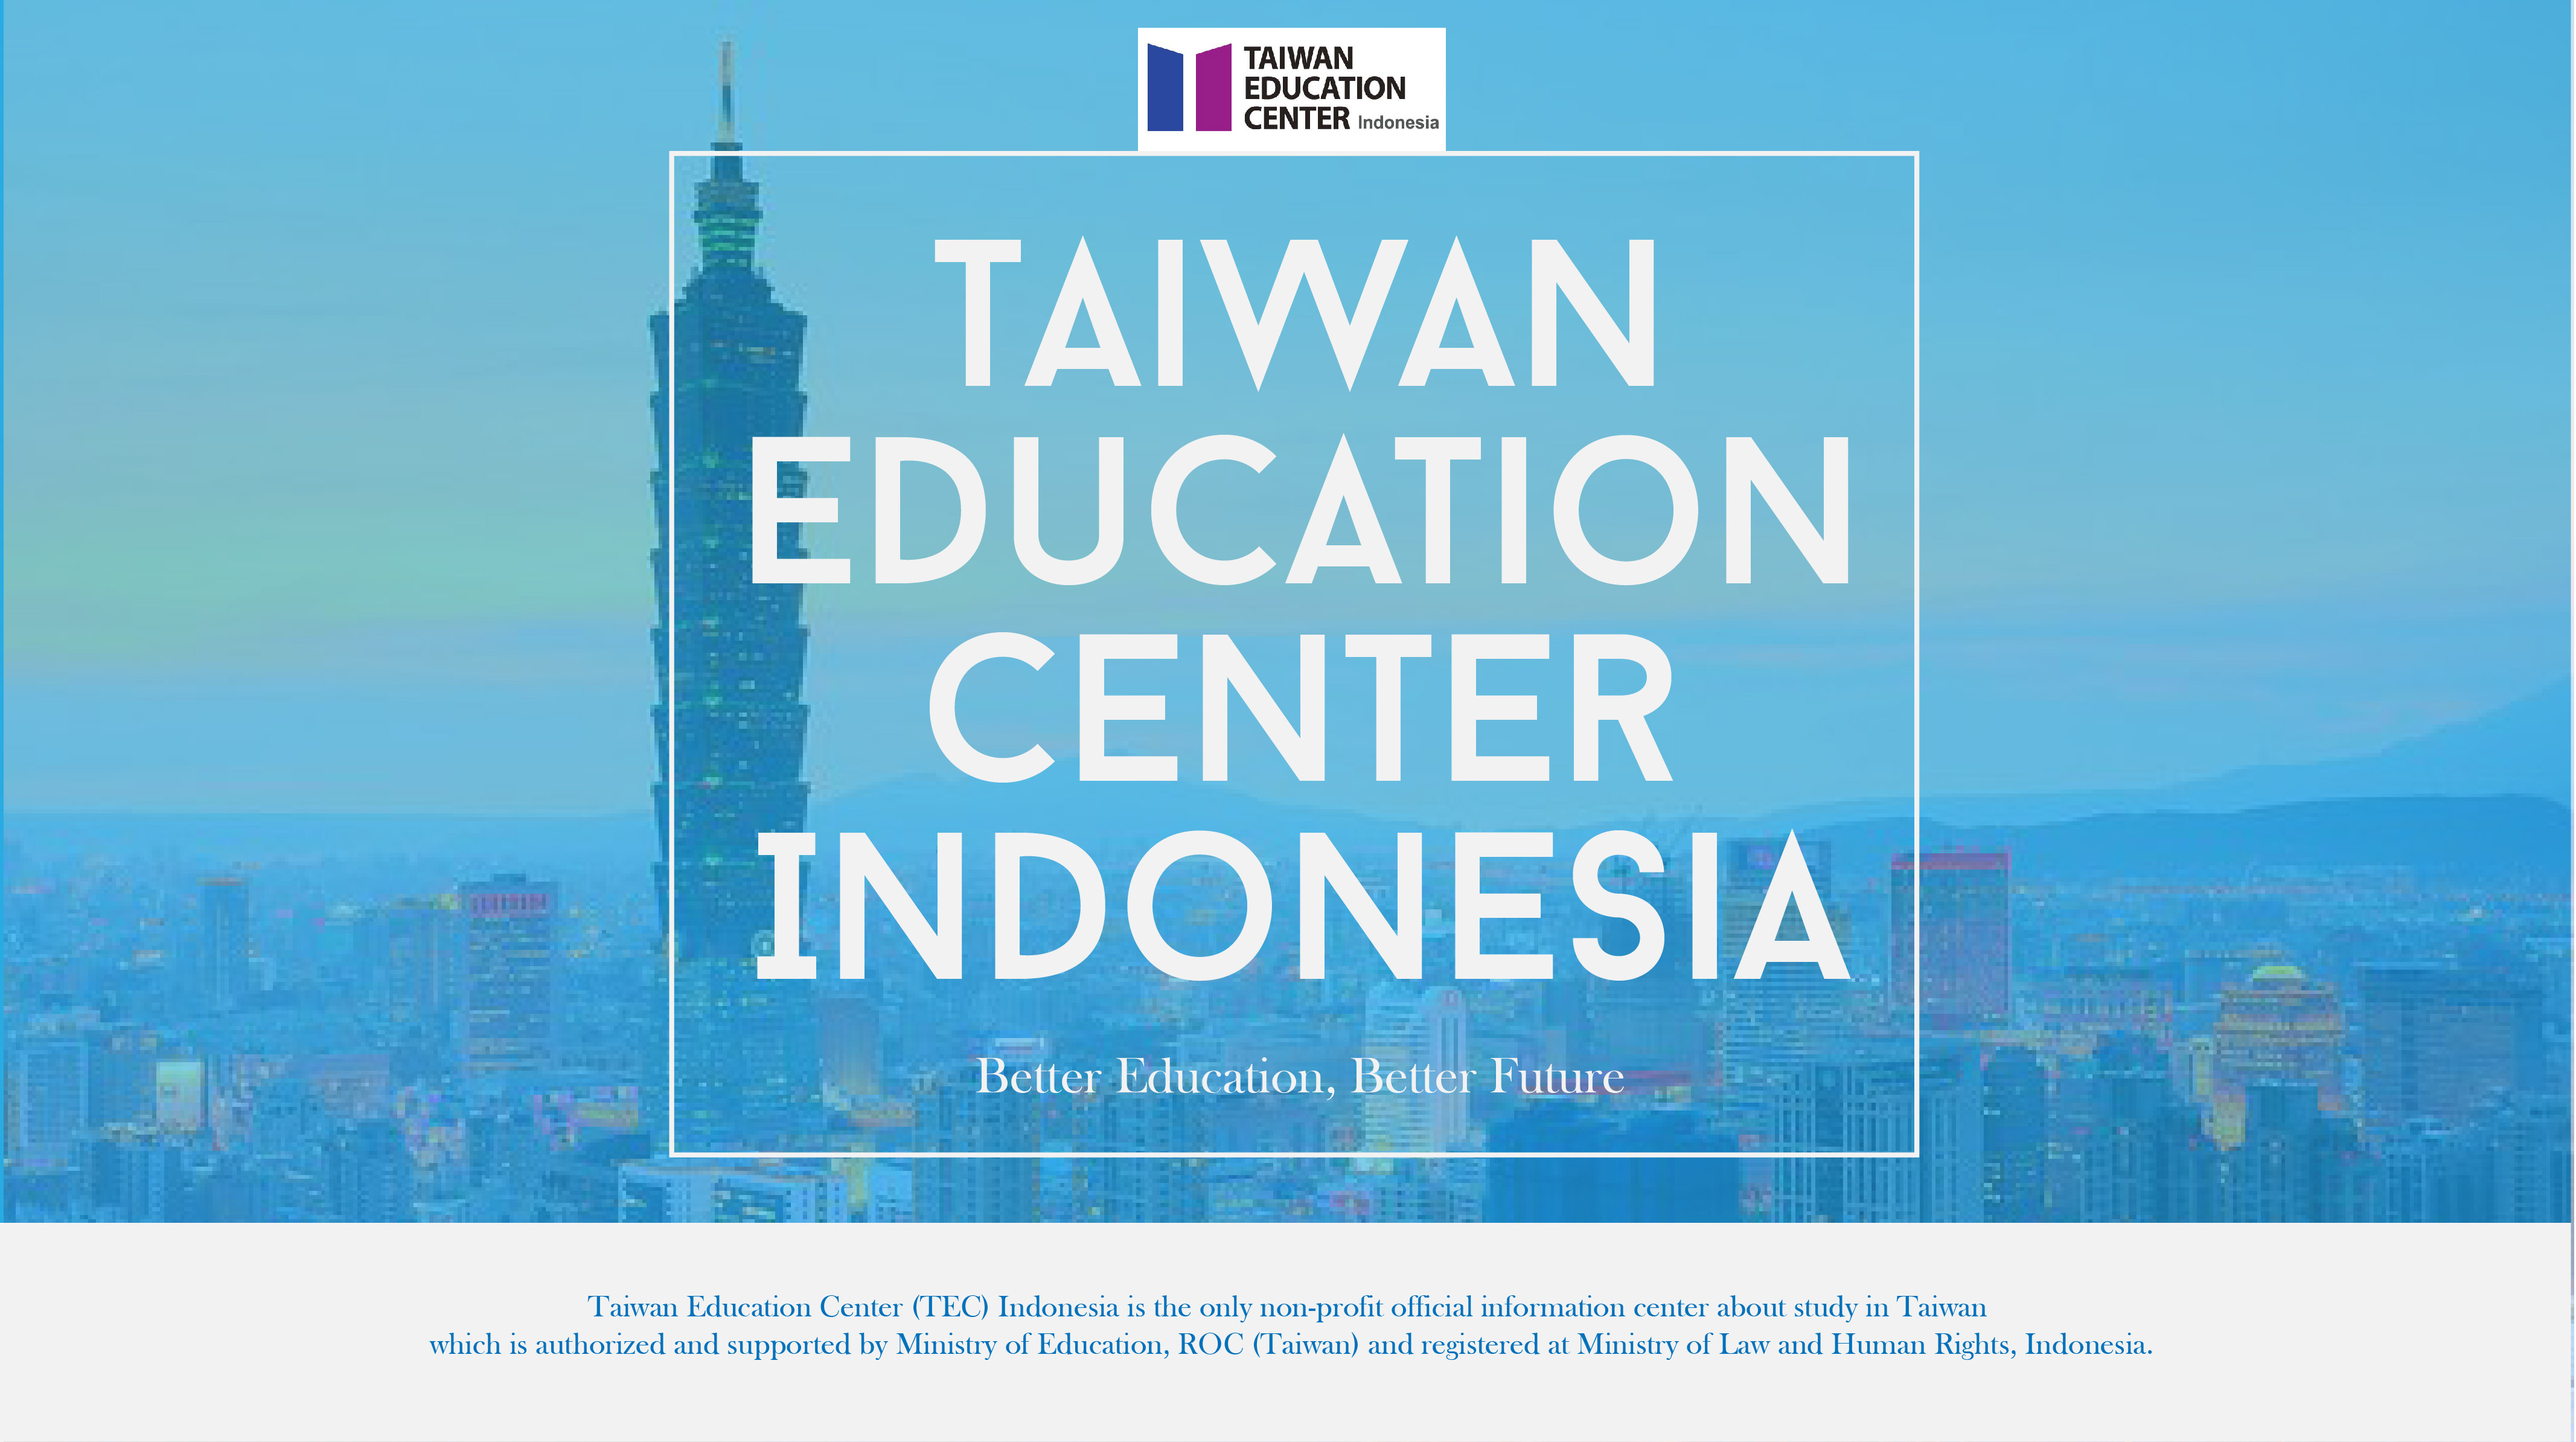 Taiwan Education Center Indonesia